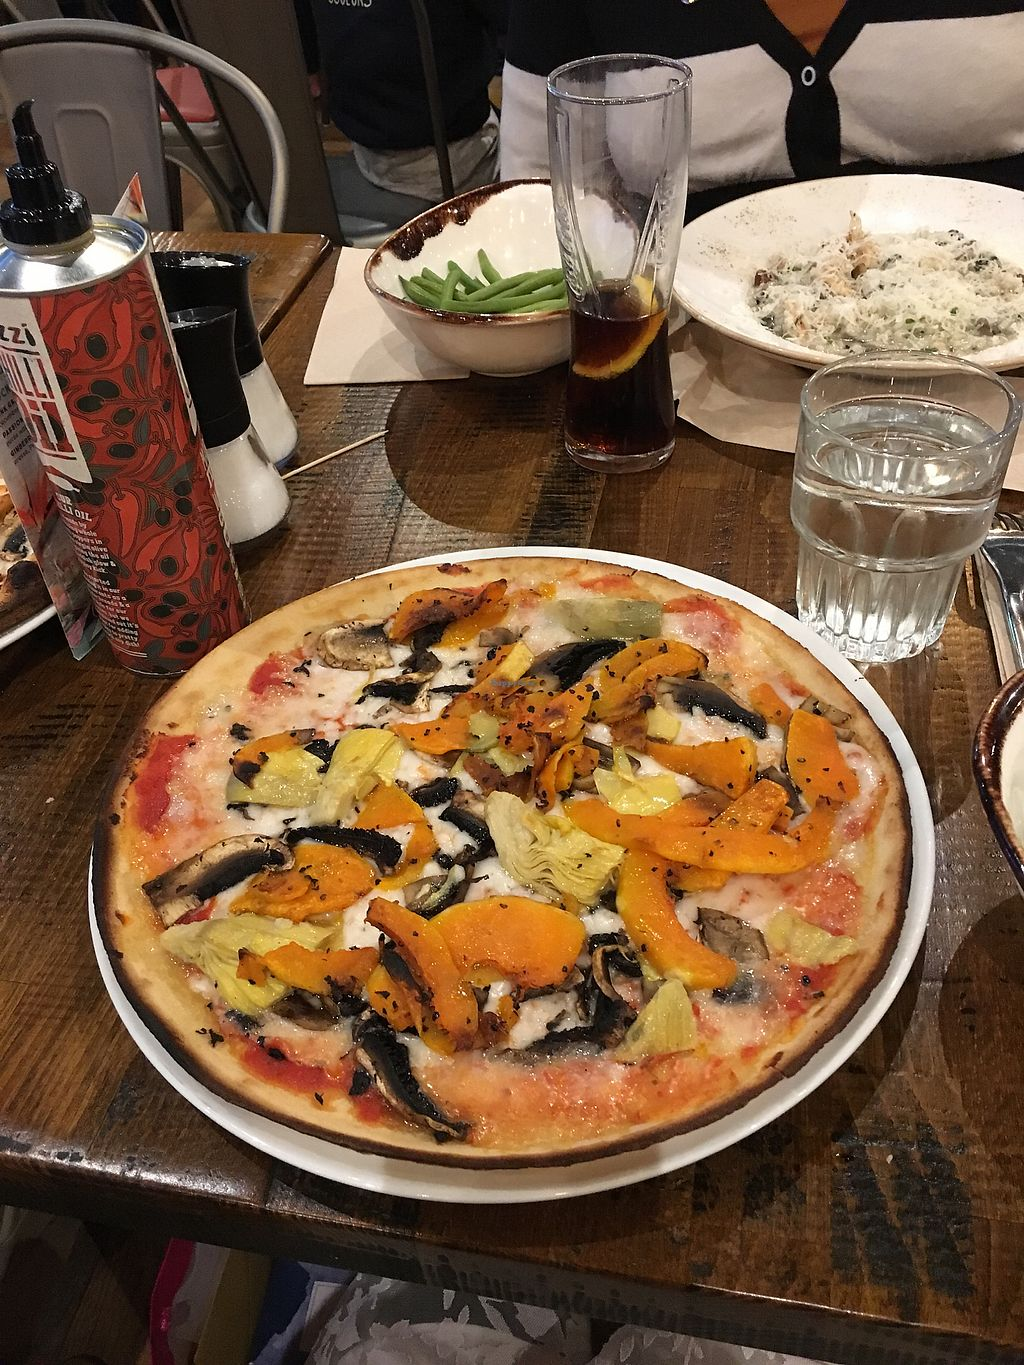 """Photo of Zizzi  by <a href=""""/members/profile/RachelJenkins"""">RachelJenkins</a> <br/>Vegan pizza with butternut squash  <br/> January 30, 2018  - <a href='/contact/abuse/image/77422/352745'>Report</a>"""